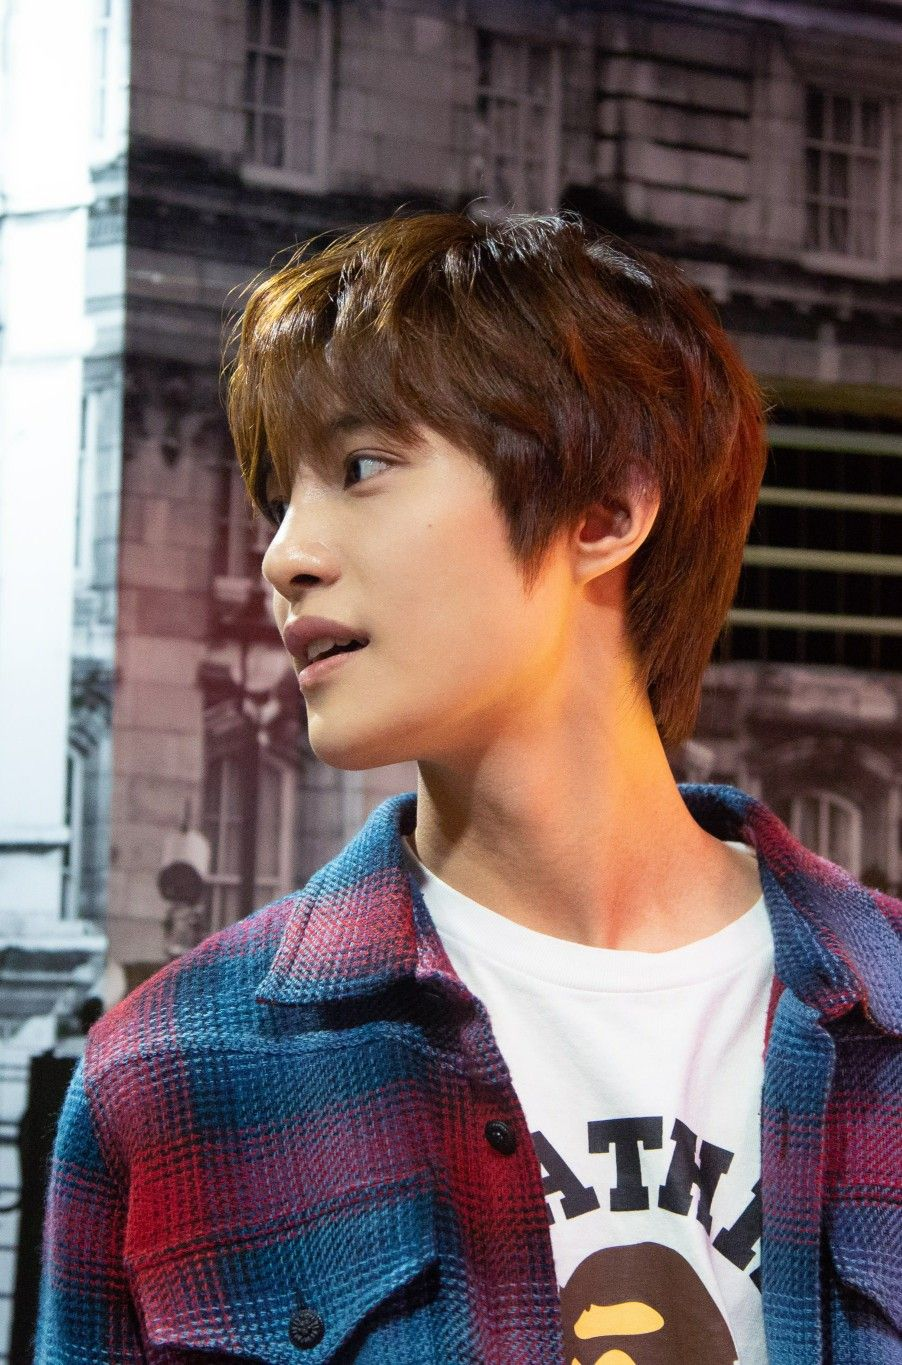 He is the main rapper and main dancer of the chinese male idol group wayv. #NCT #YANGYANG | Nct, Nct 127, Yangyang wayv